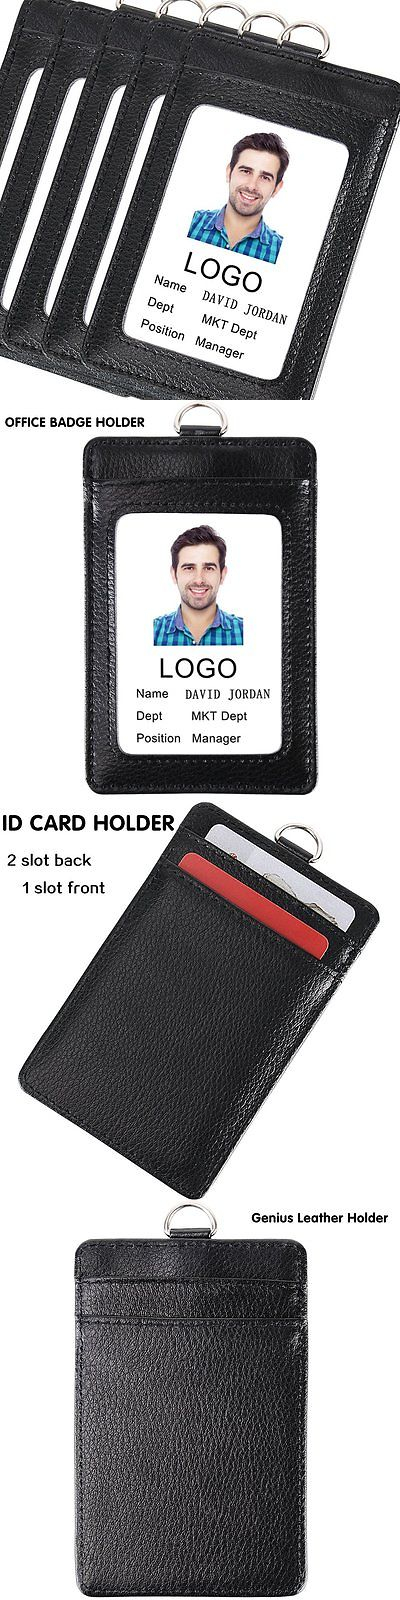 ID and Badge Holders 163582 Acctrend Genius Leather Id Or Office